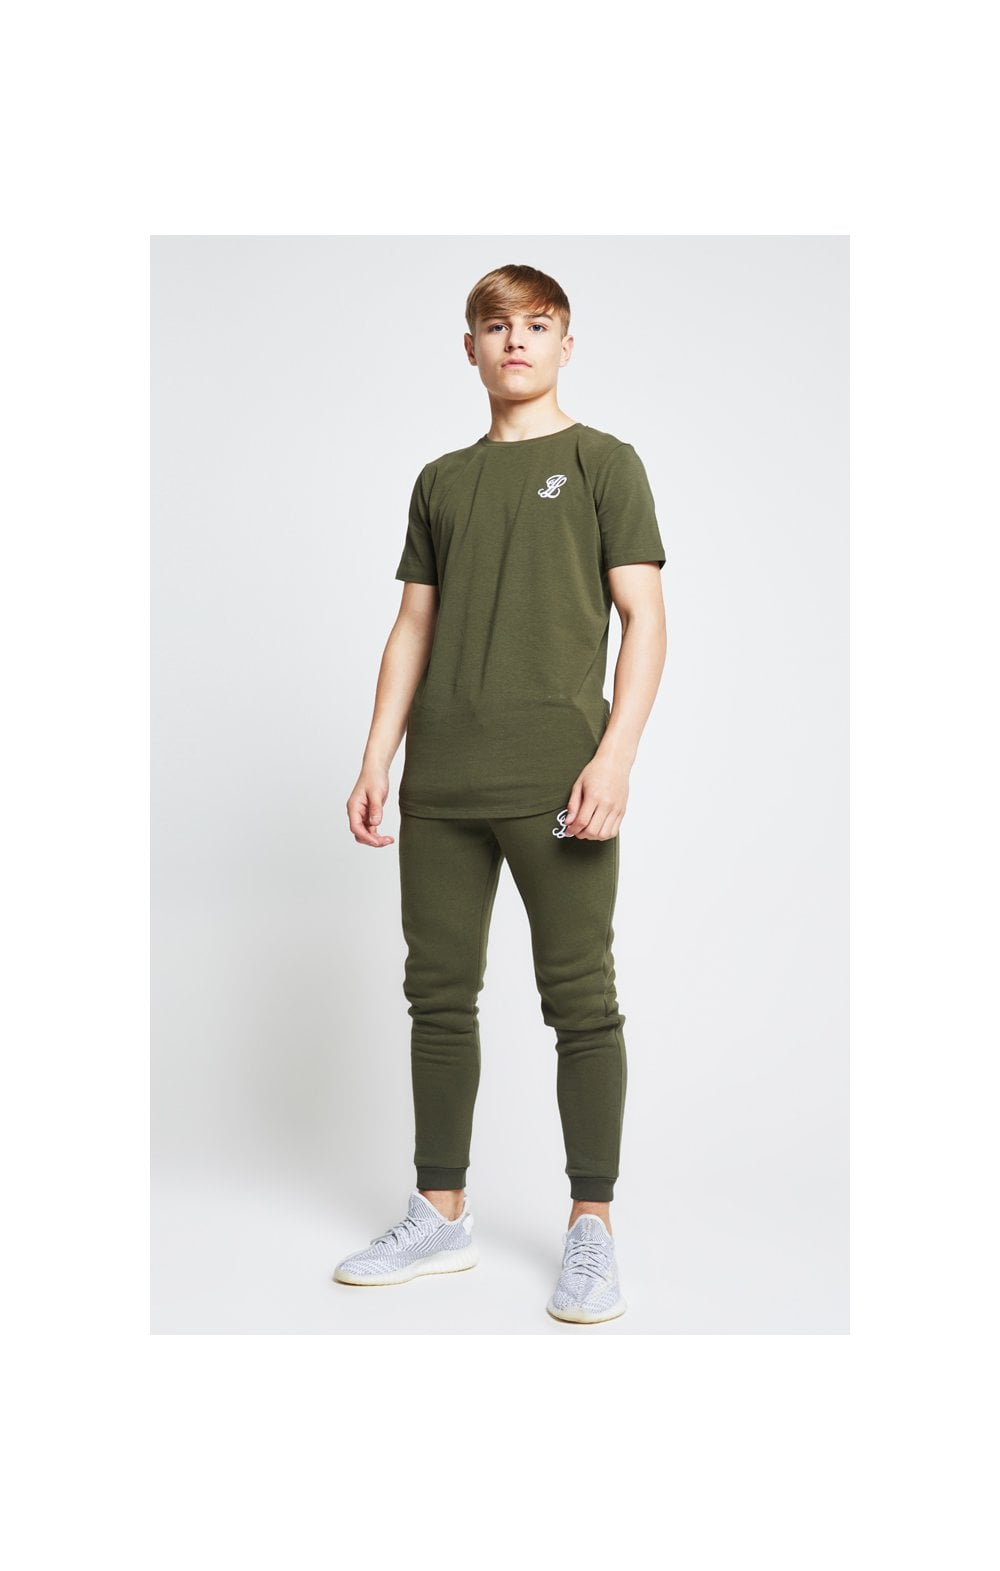 Illusive London Tee – Khaki (2)